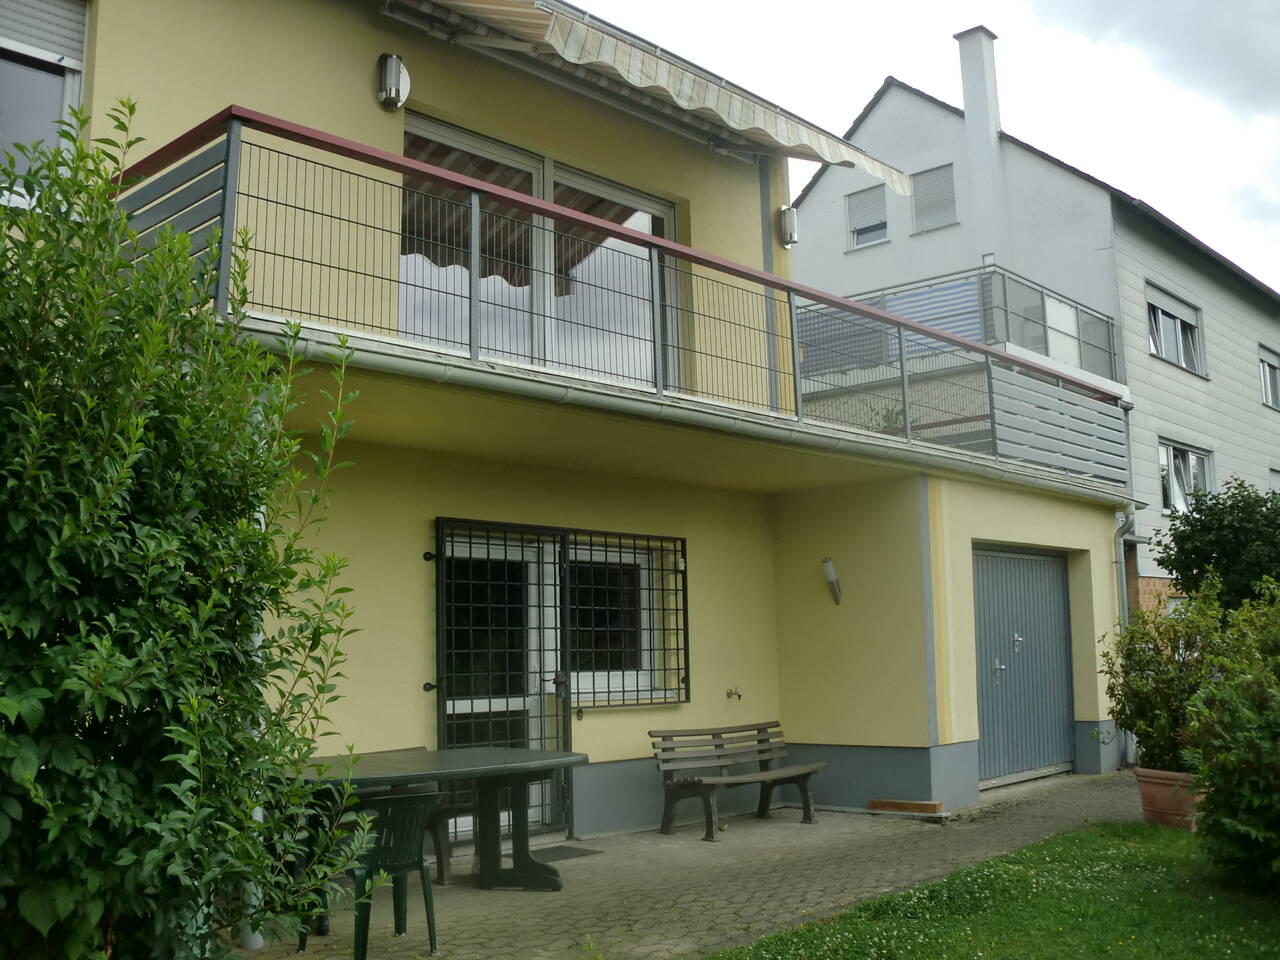 /media/0c8dbc0e-544c-4596-b3a8-b1403563eaee.jpg?w=1280 - Holiday apartment Hunsrück